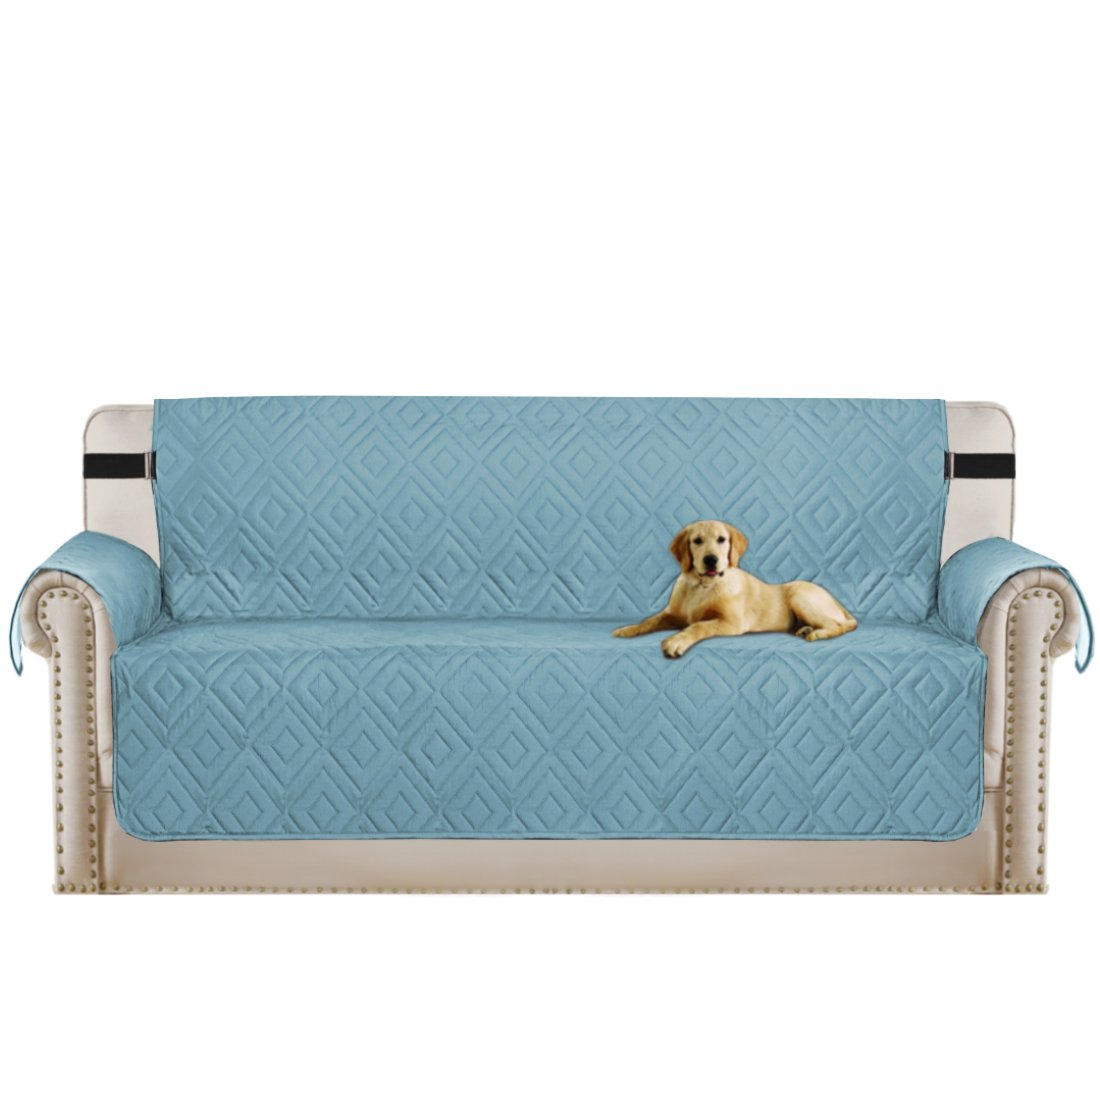 Turquoize Pet Friendly Protector for Sofa with Adjustable Straps Furniture Cover with Adjustable Straps, Perfect for Kids, Dogs and Cats, Seat Width up to 66'' (Blue/Beige, Sofa 86''x132'')